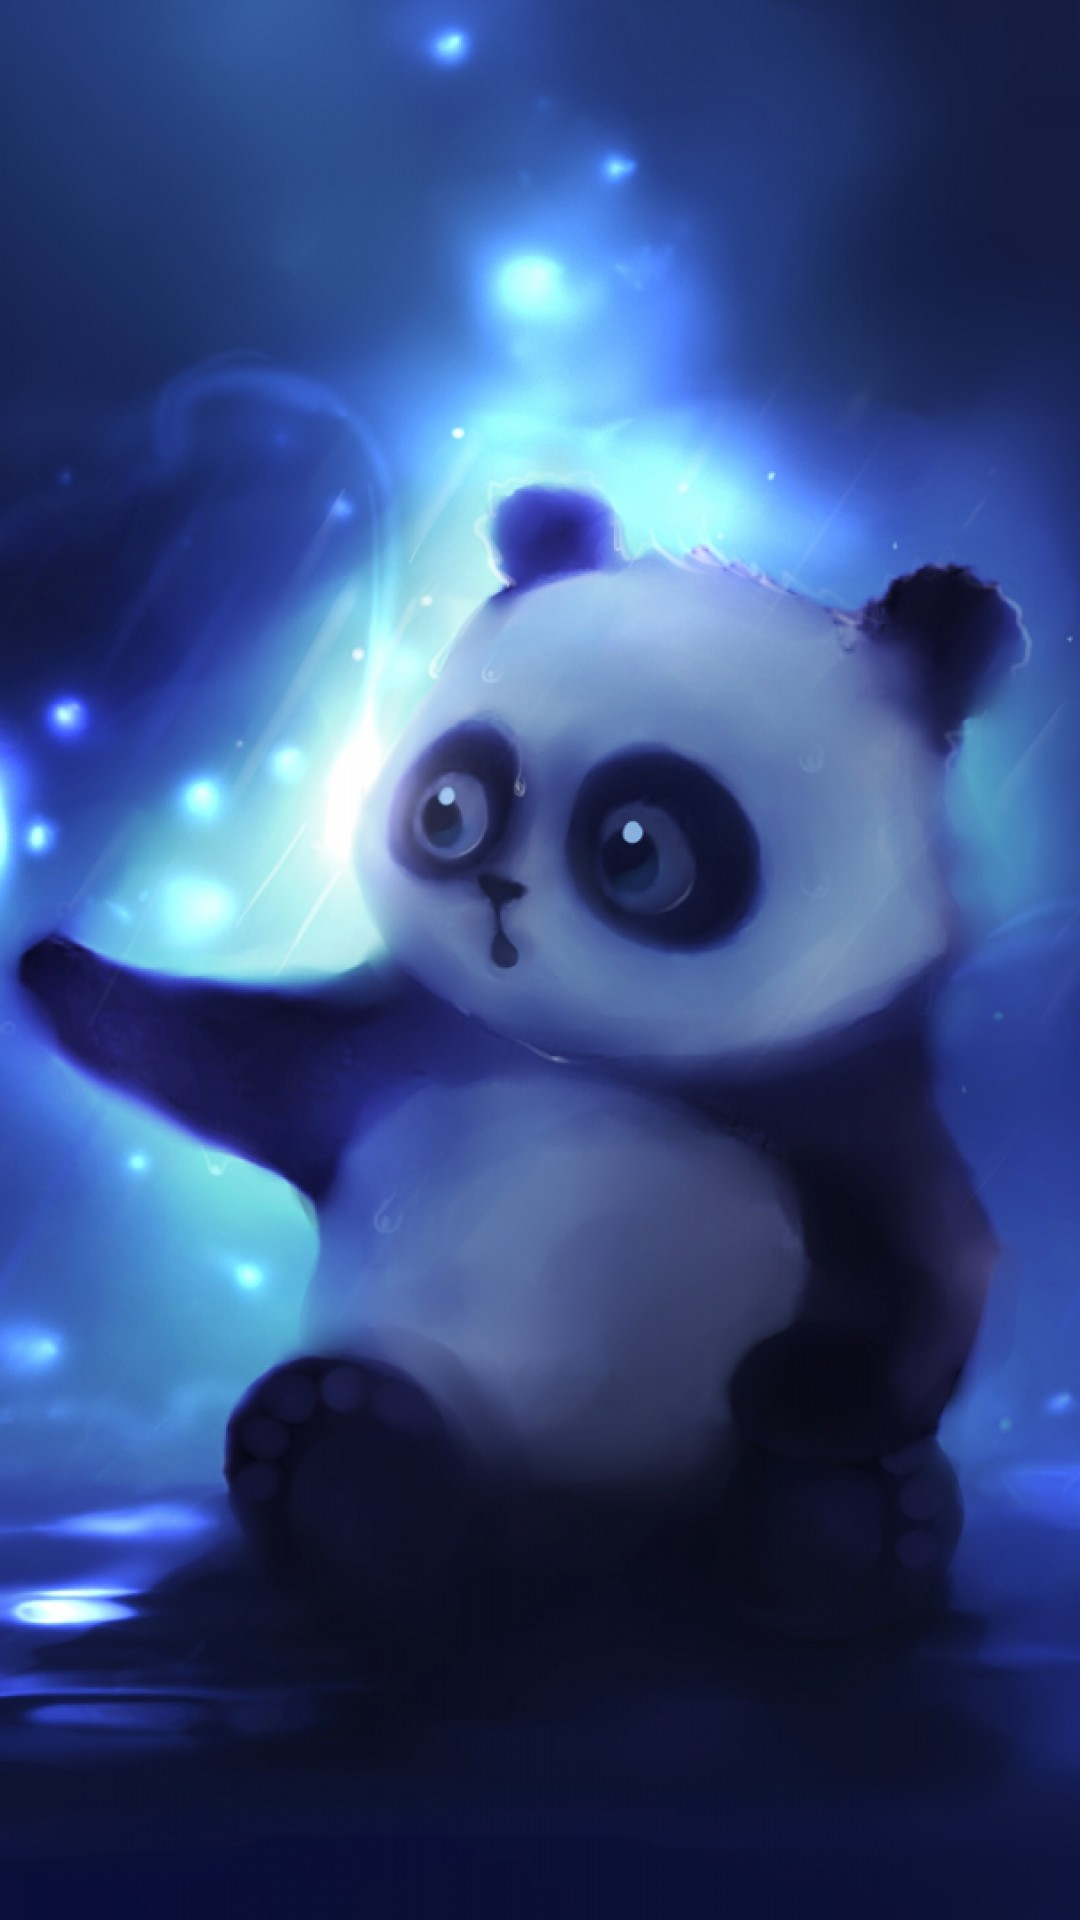 1080x1920 Preview wallpaper panda, art, apofiss, night